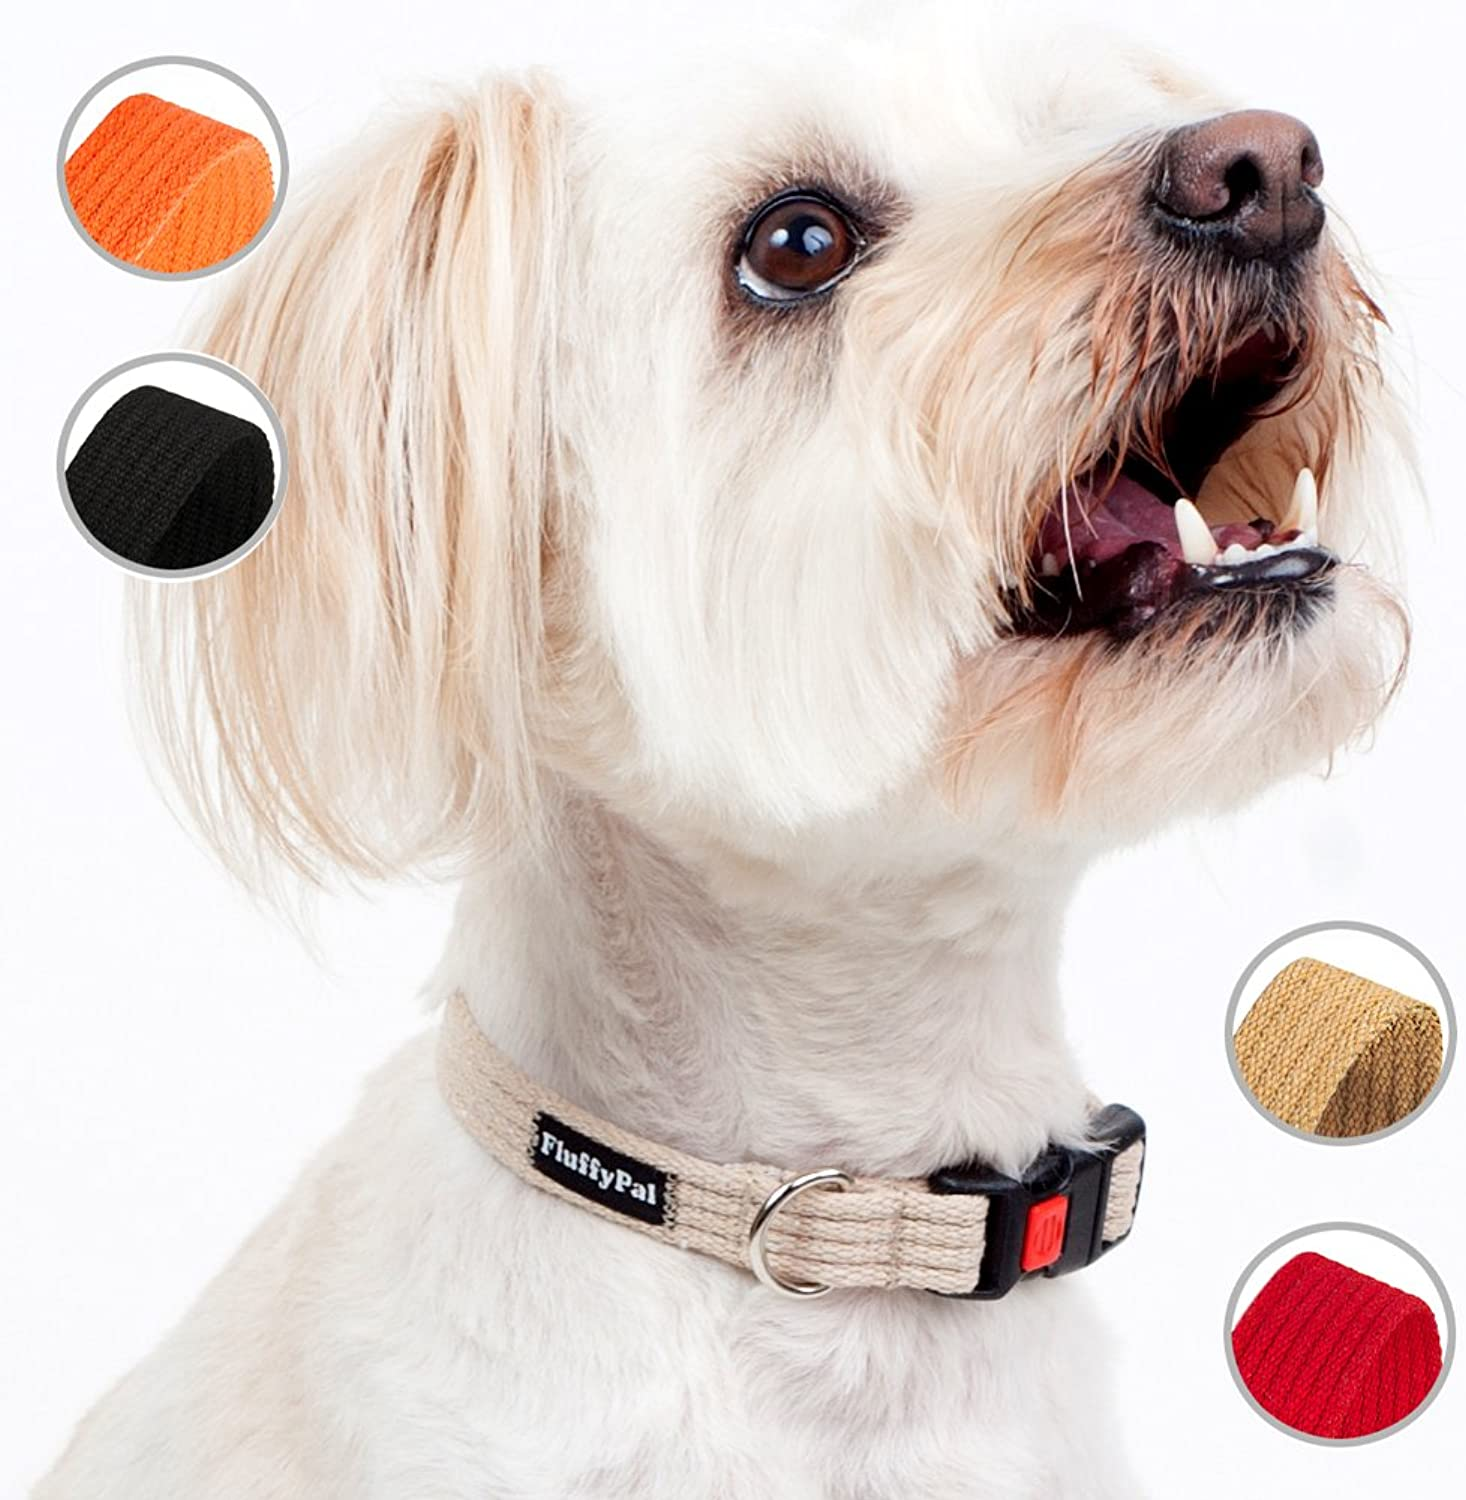 FluffyPal Cotton Dog Collar for Large Dogs  Sturdy, Durable and More Importantly Secure Adjustable Pet Collar  Secure Your Dog, Walk with Confidence and Make Your Dog Stand Out at The Dog Park